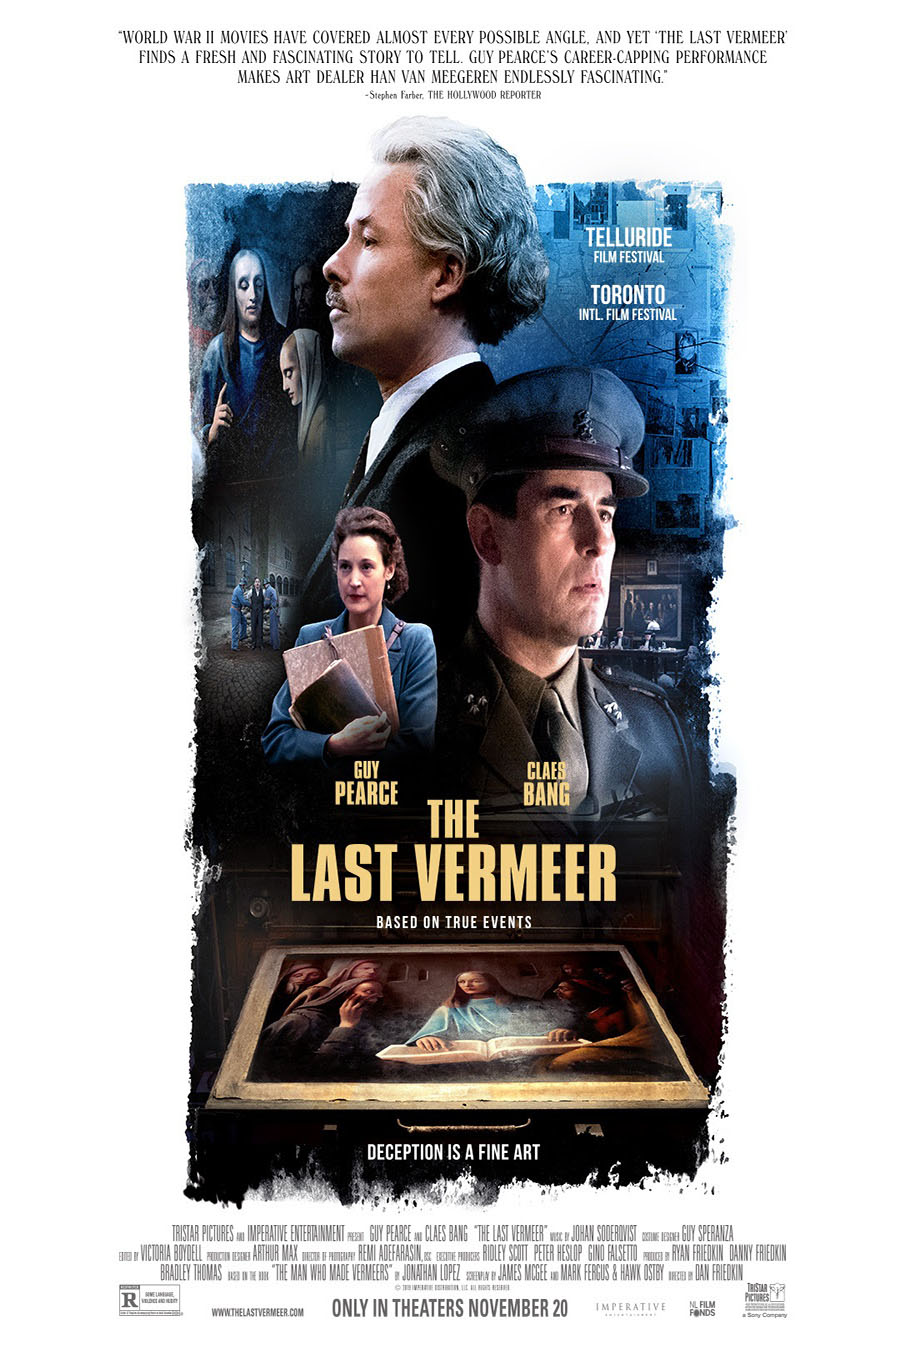 Poster for The Last Vermeer